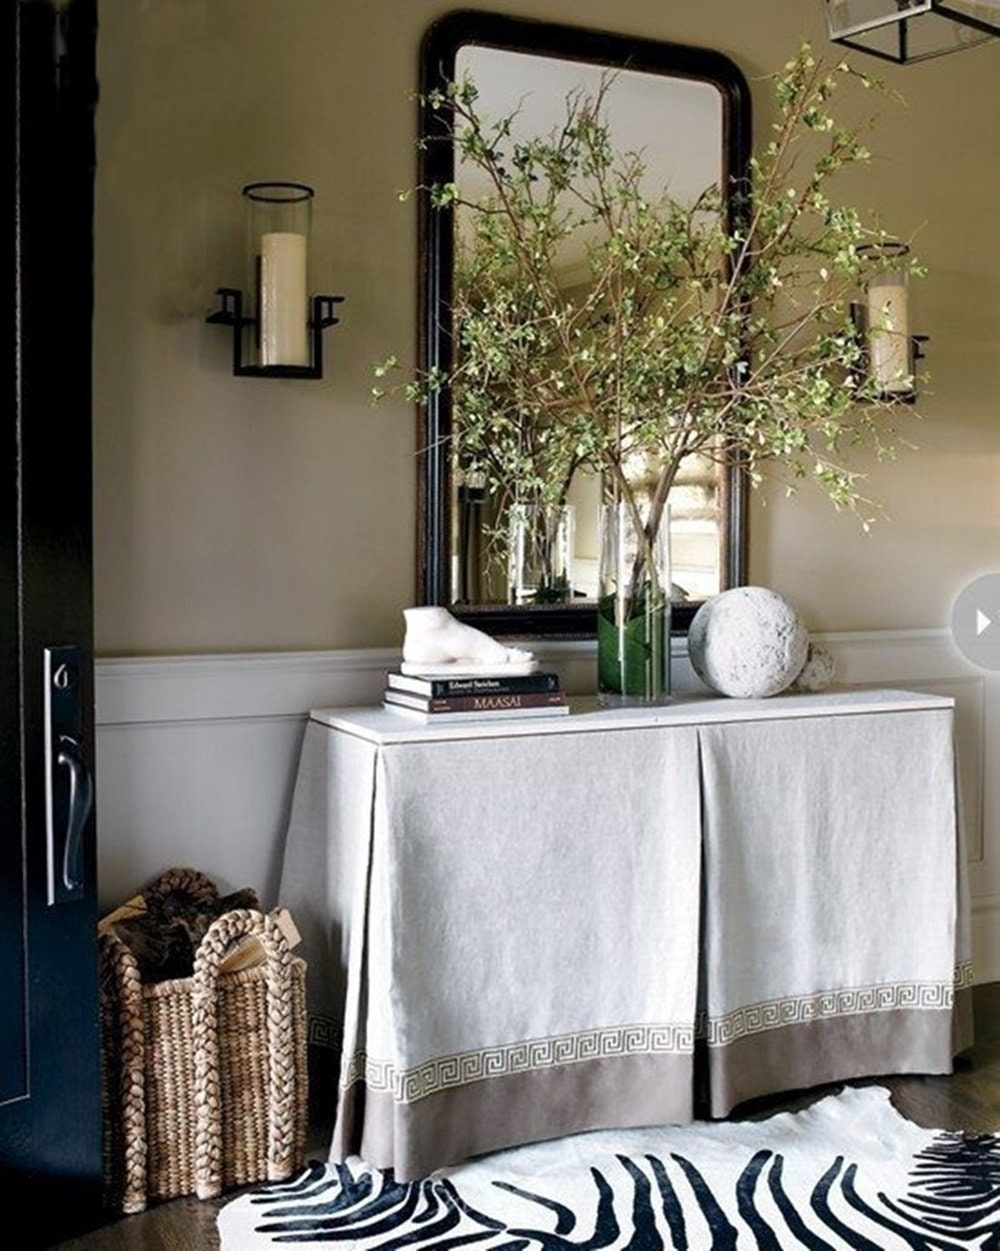 Custom flax linen table skirt and 25 Beautifully Handmade Decor Finds for Home to help you feather your nest and also inspire your interior design schemes.